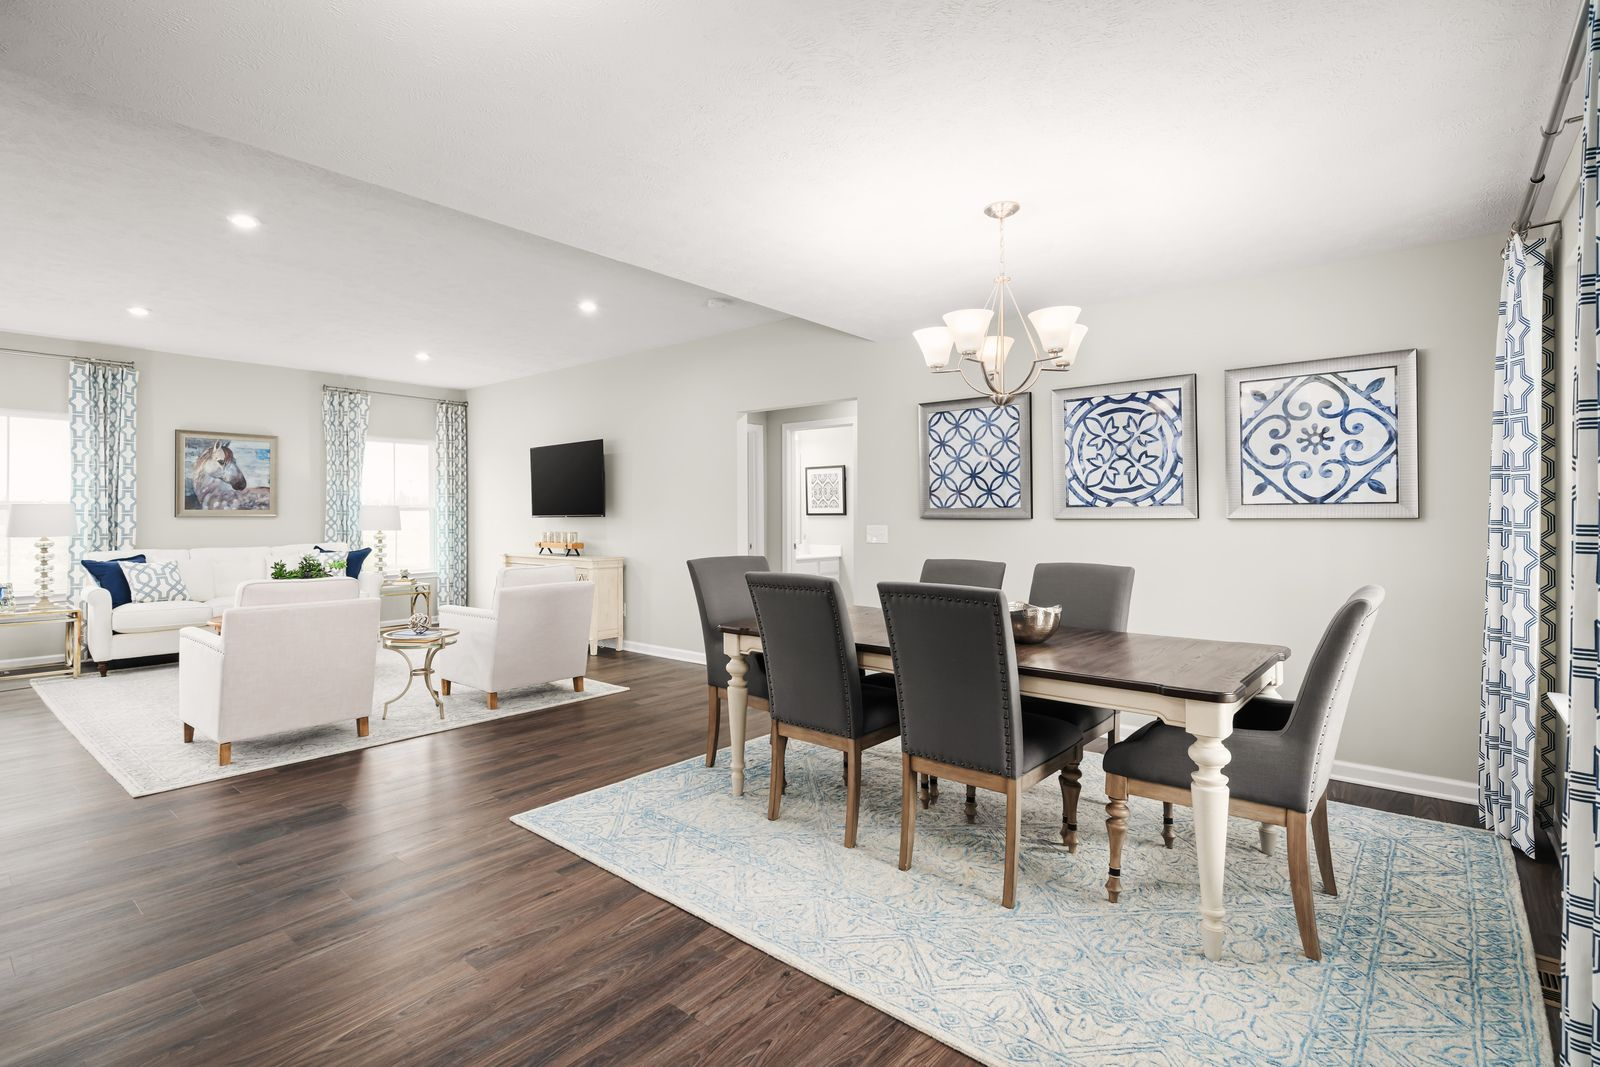 Living Area featured in the Aviano By Ryan Homes in Sussex, DE